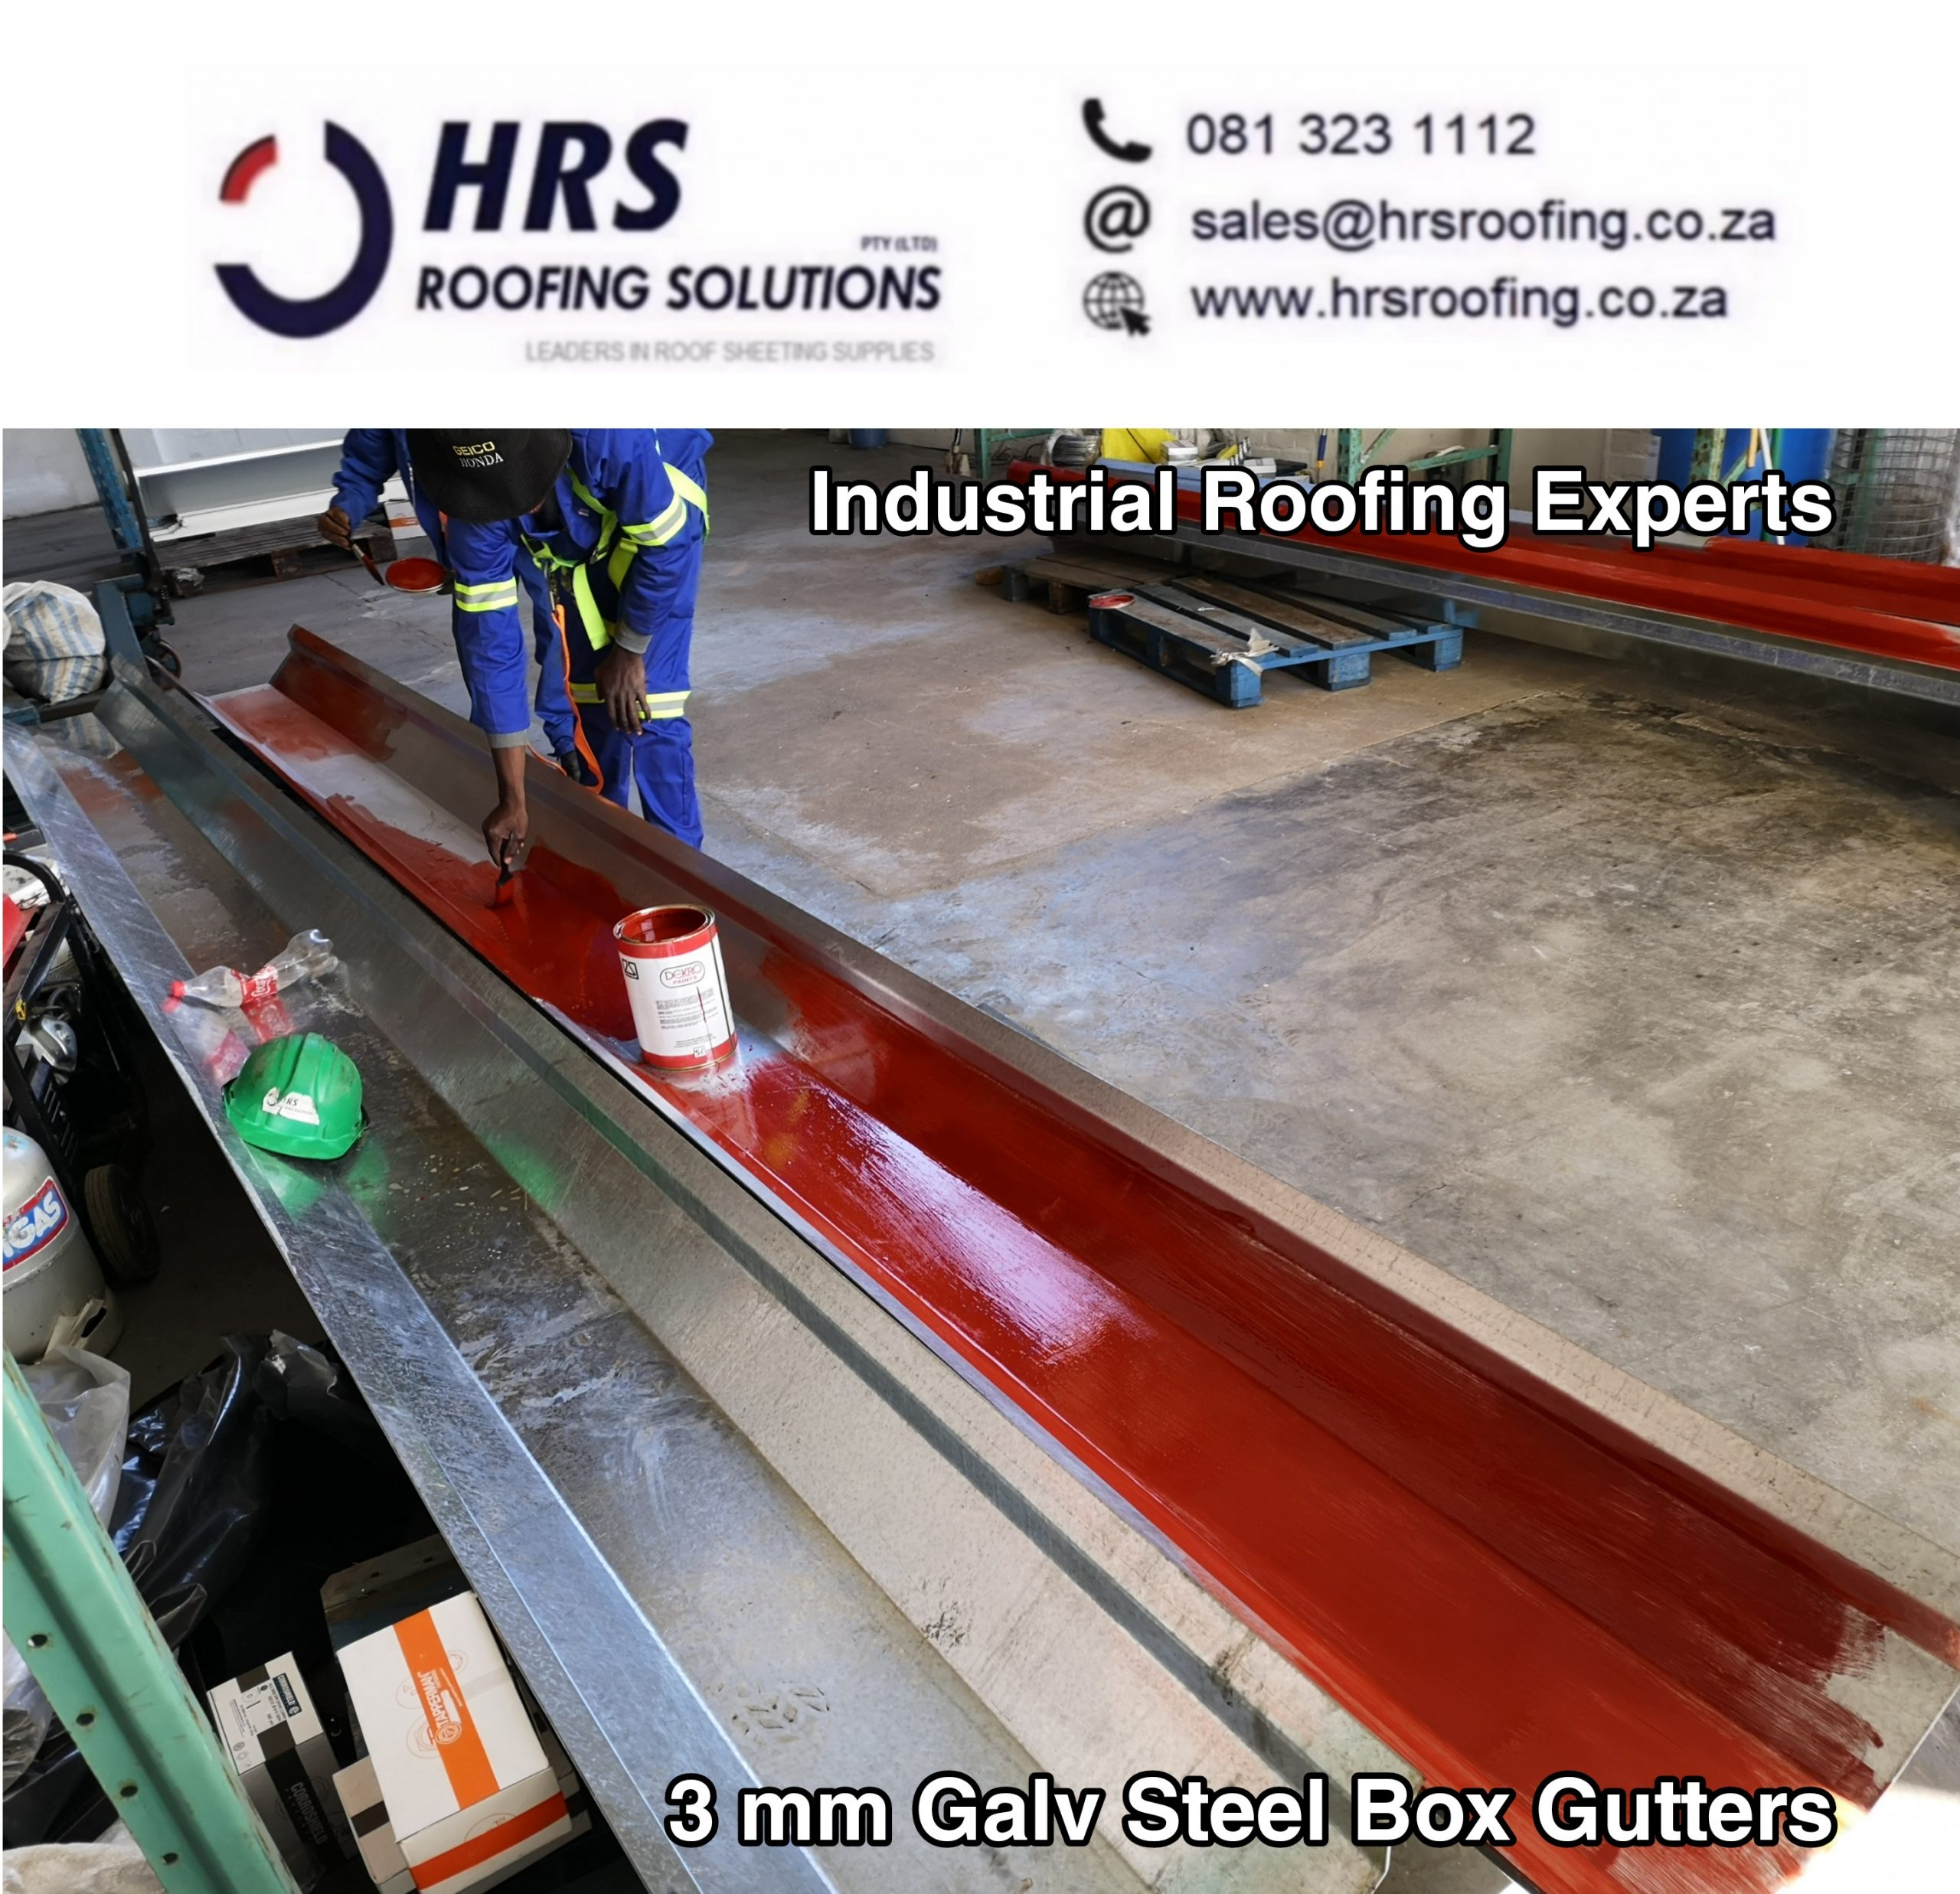 hrs roofing solutions Asbestos roof removals roofing contractors galv steel gutter